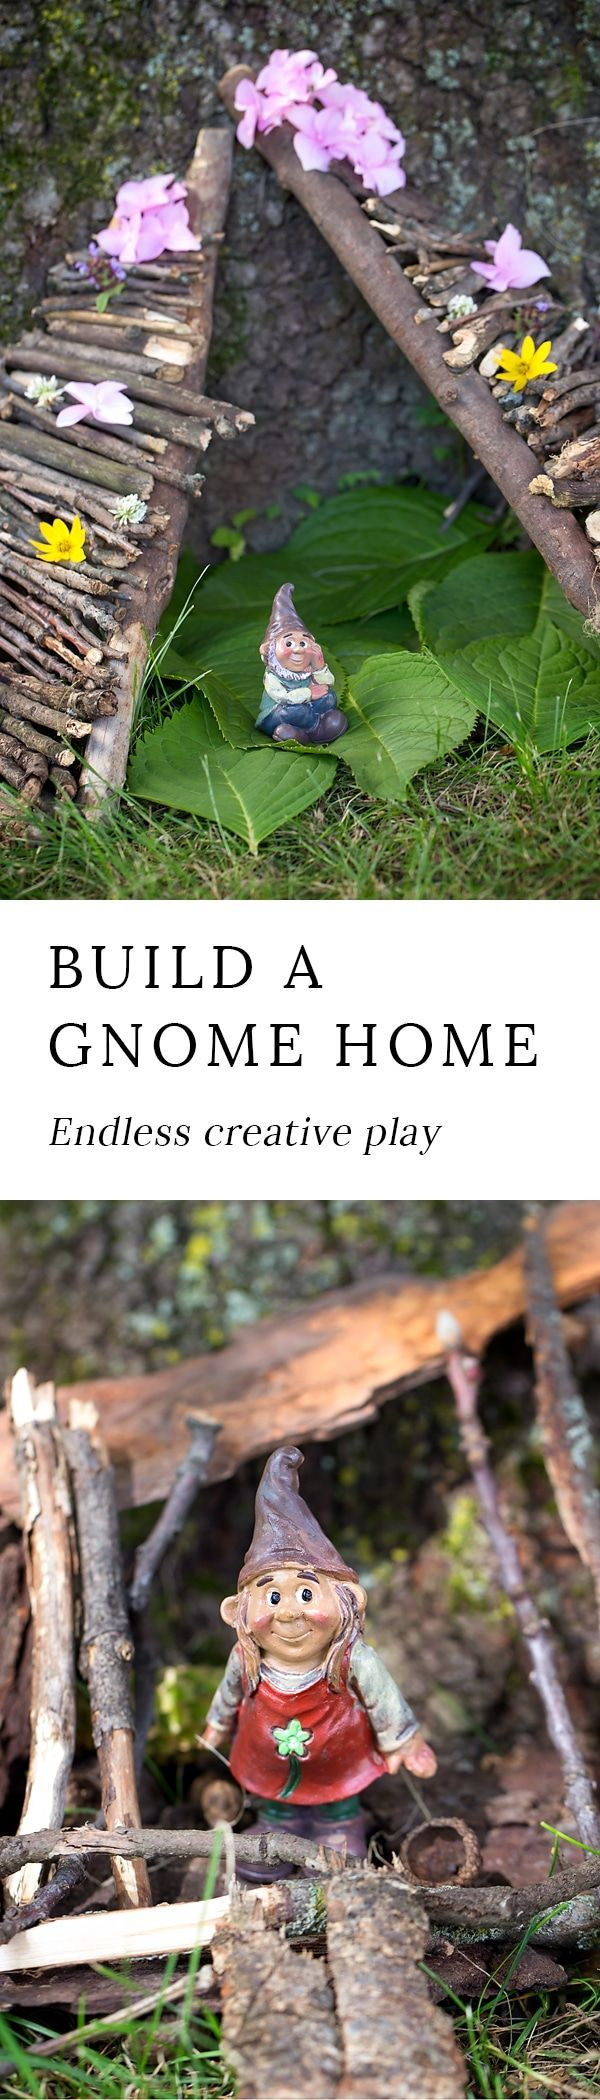 Backyard gnome homes invite children into a magical world where creative play is limitless. Get outside to play with your kids and release your inner child! via @https://www.pinterest.com/fireflymudpie/